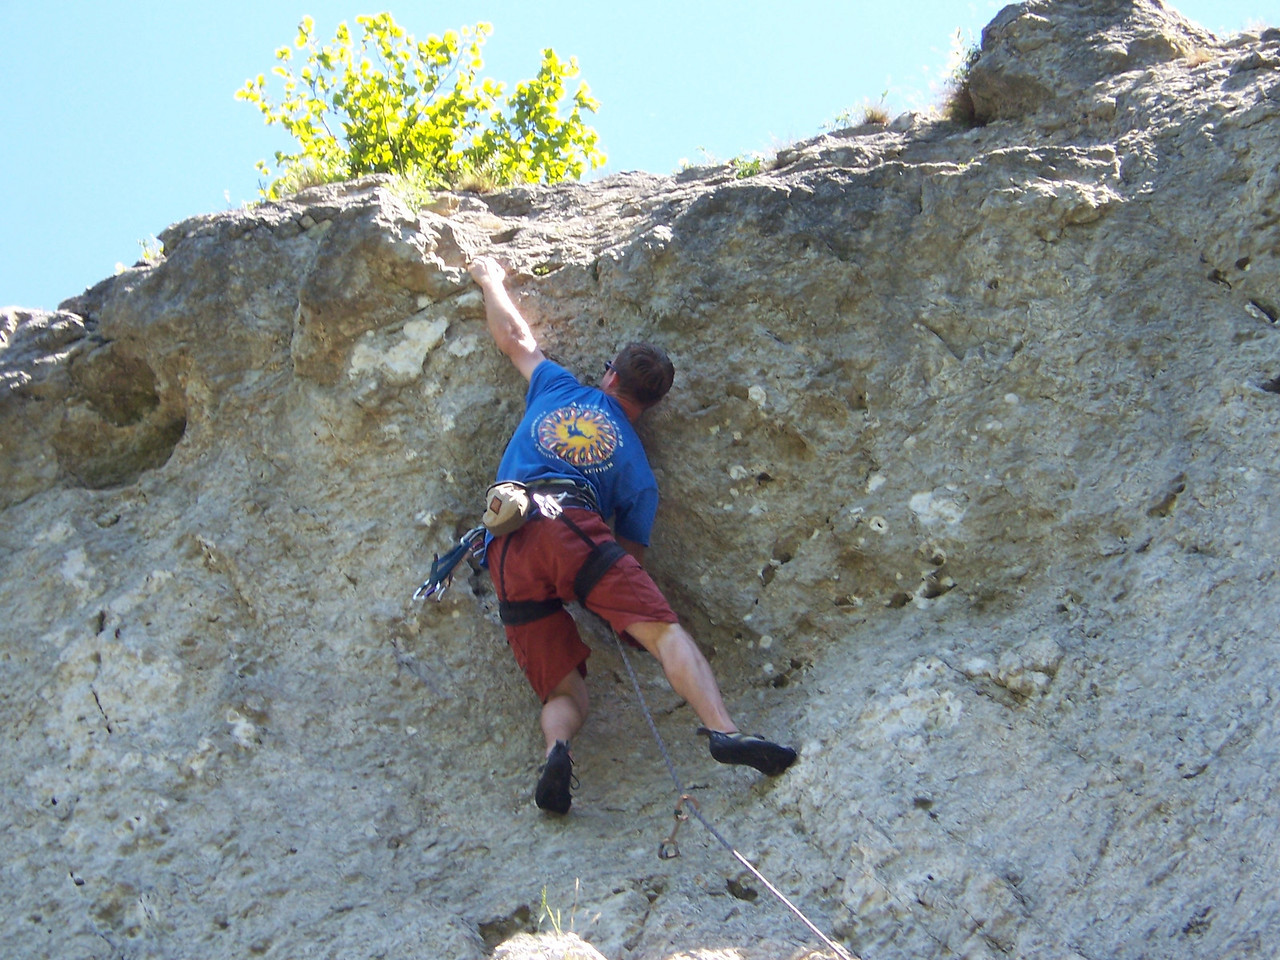 My first climb, alittle tough for a warm up but really good!  Freyr is limestone sport climbing.